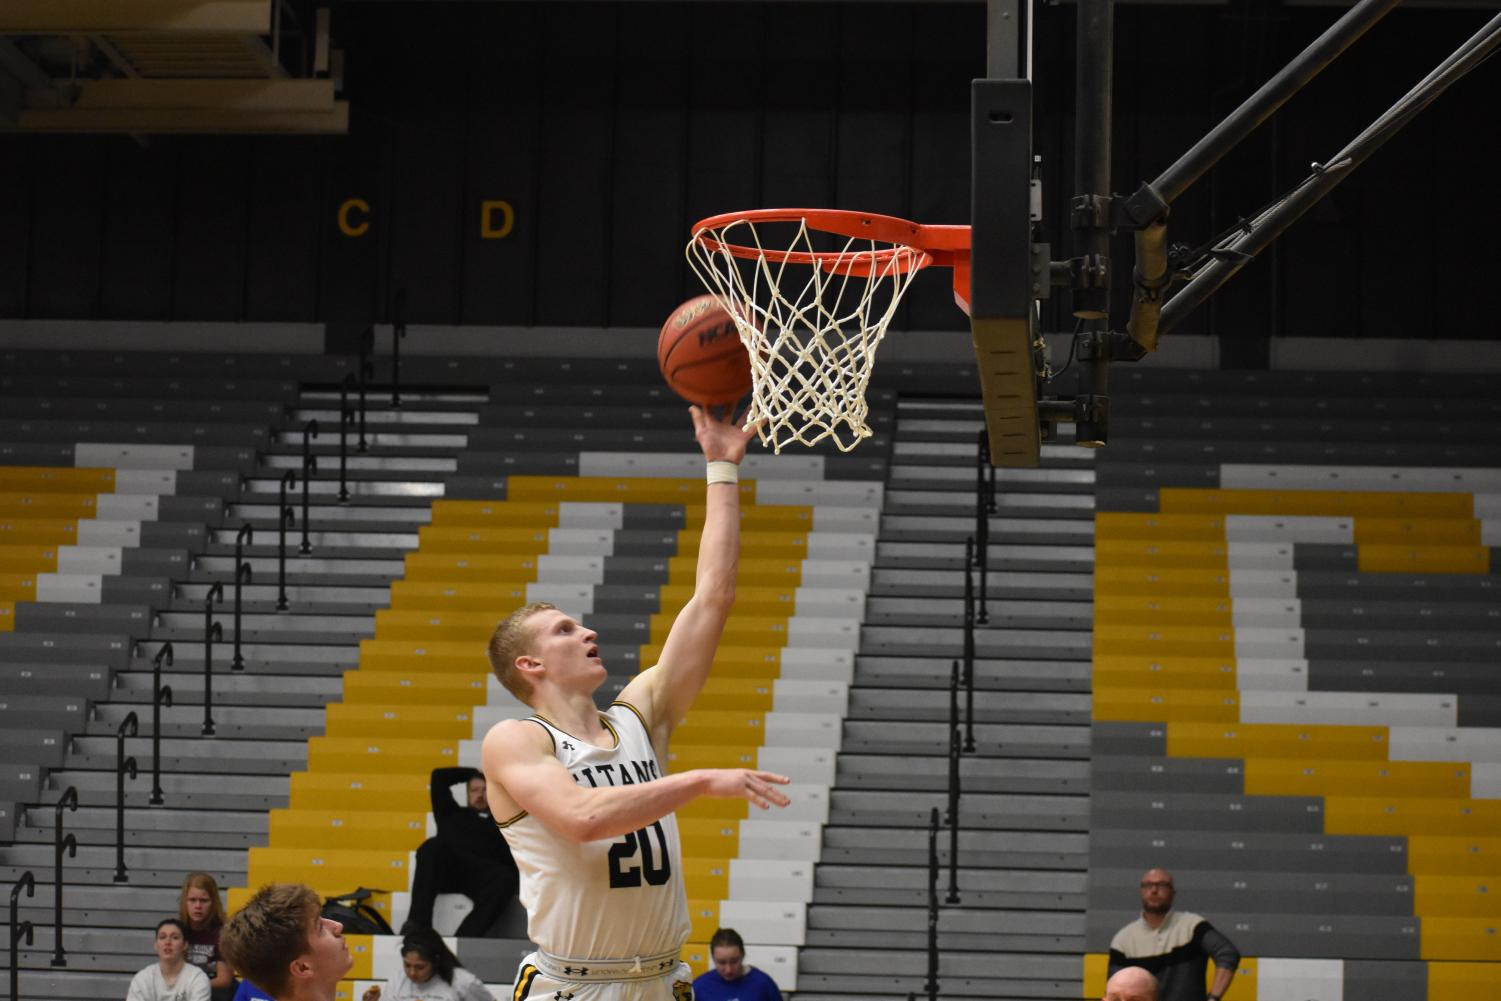 UW Oshkosh sophomore forward Connor Duax attempts a layup in front of an empty Kolf Sports Center.